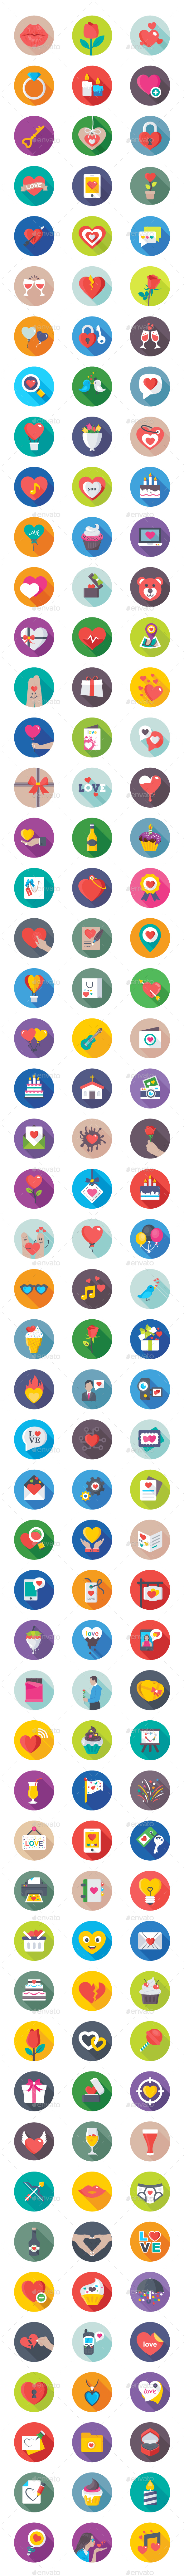 150 Flat Love and Valentine Icons - Icons